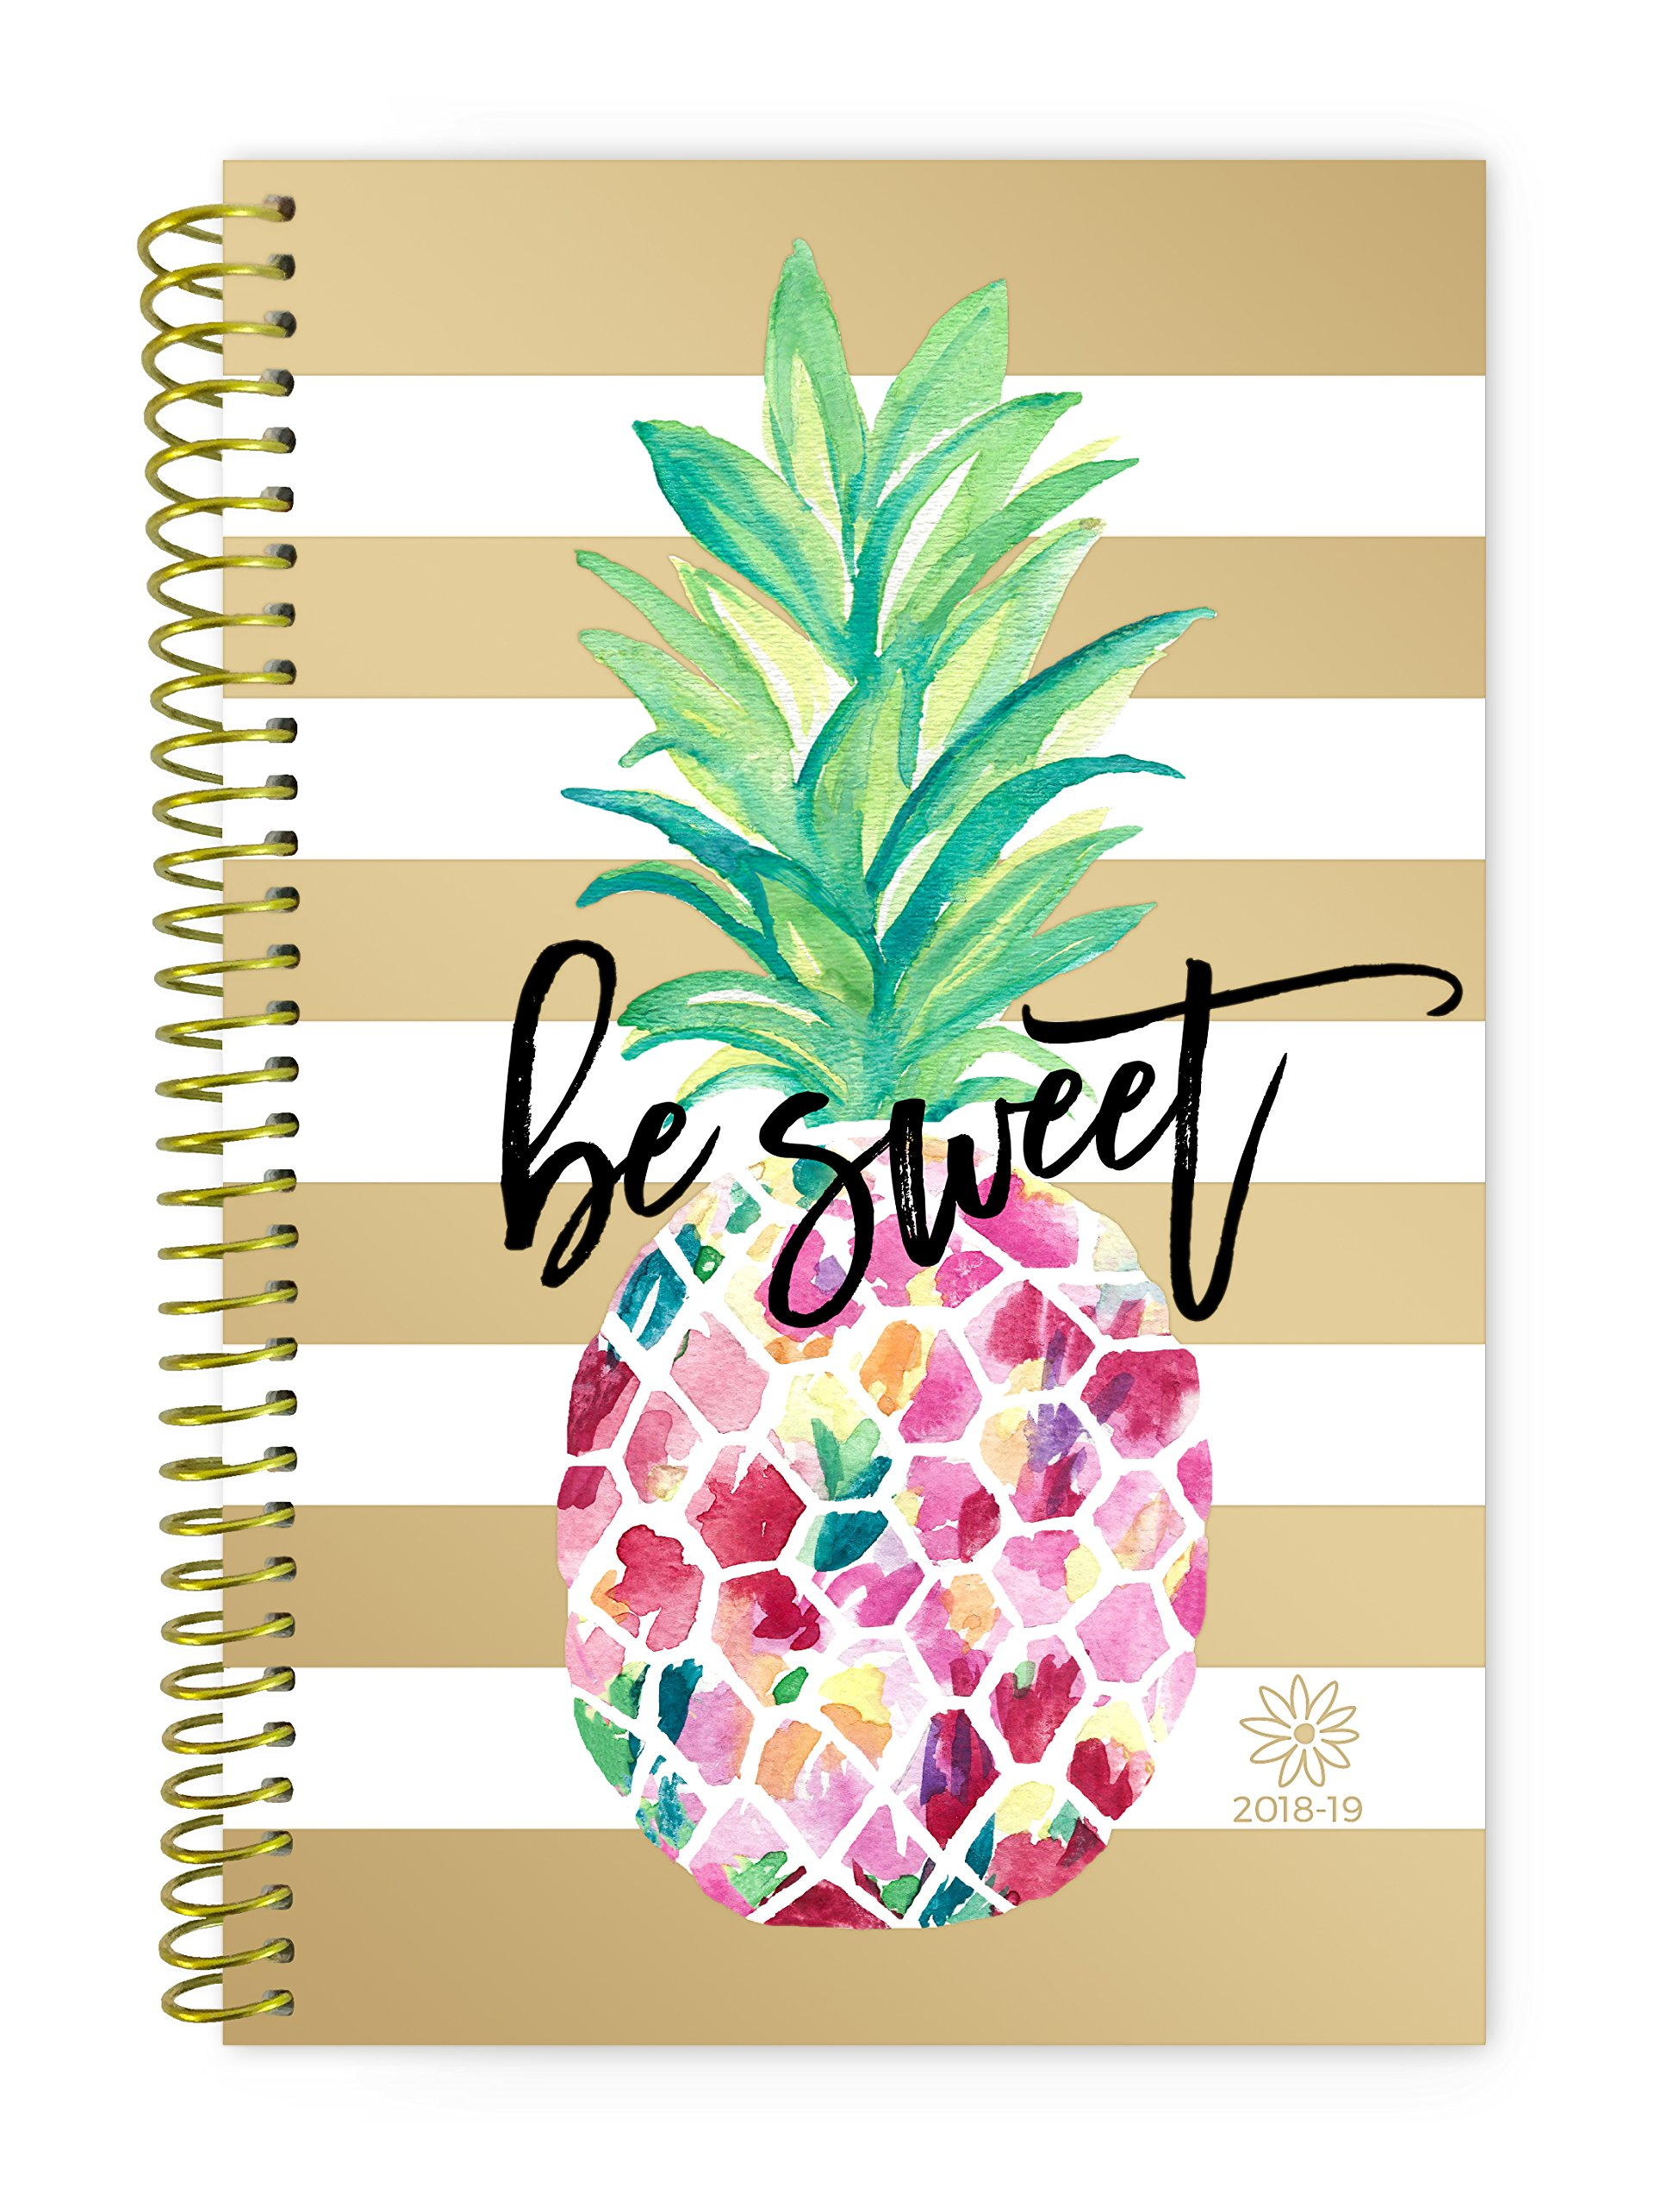 Bloom Daily Planners 2018-2019 Academic Year Day Planner - Monthly and Weekly Calendar Book - Inspirational Dated Agenda Organizer - (August 2018 - July 2019) - 6'' x 8.25'' - Pineapple